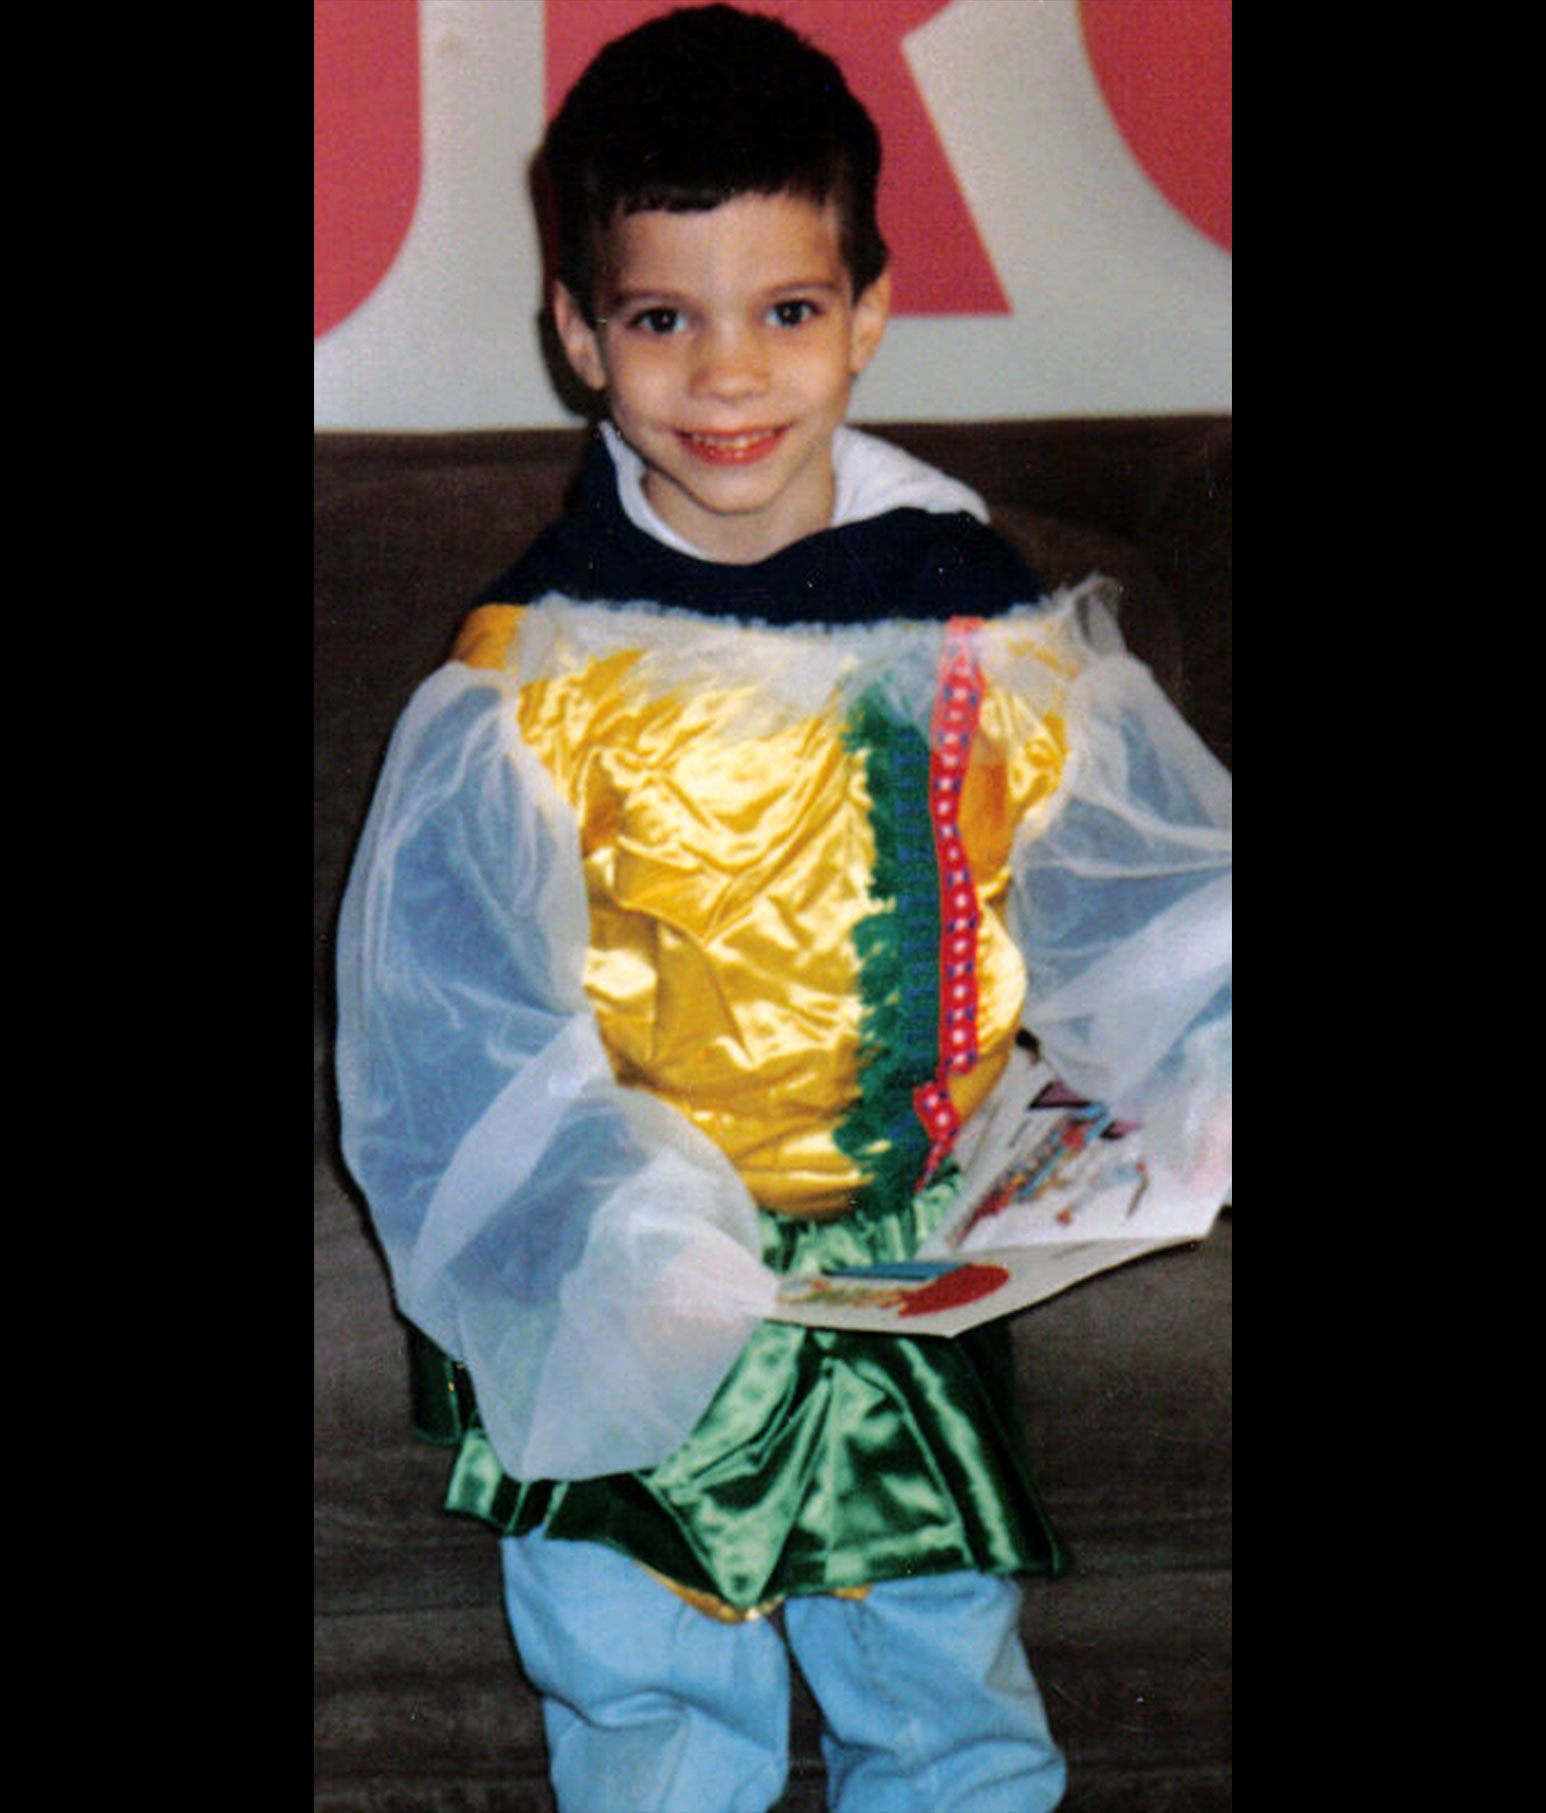 An old photo of a young boy smiling at the camera as he wears a jester outfit.